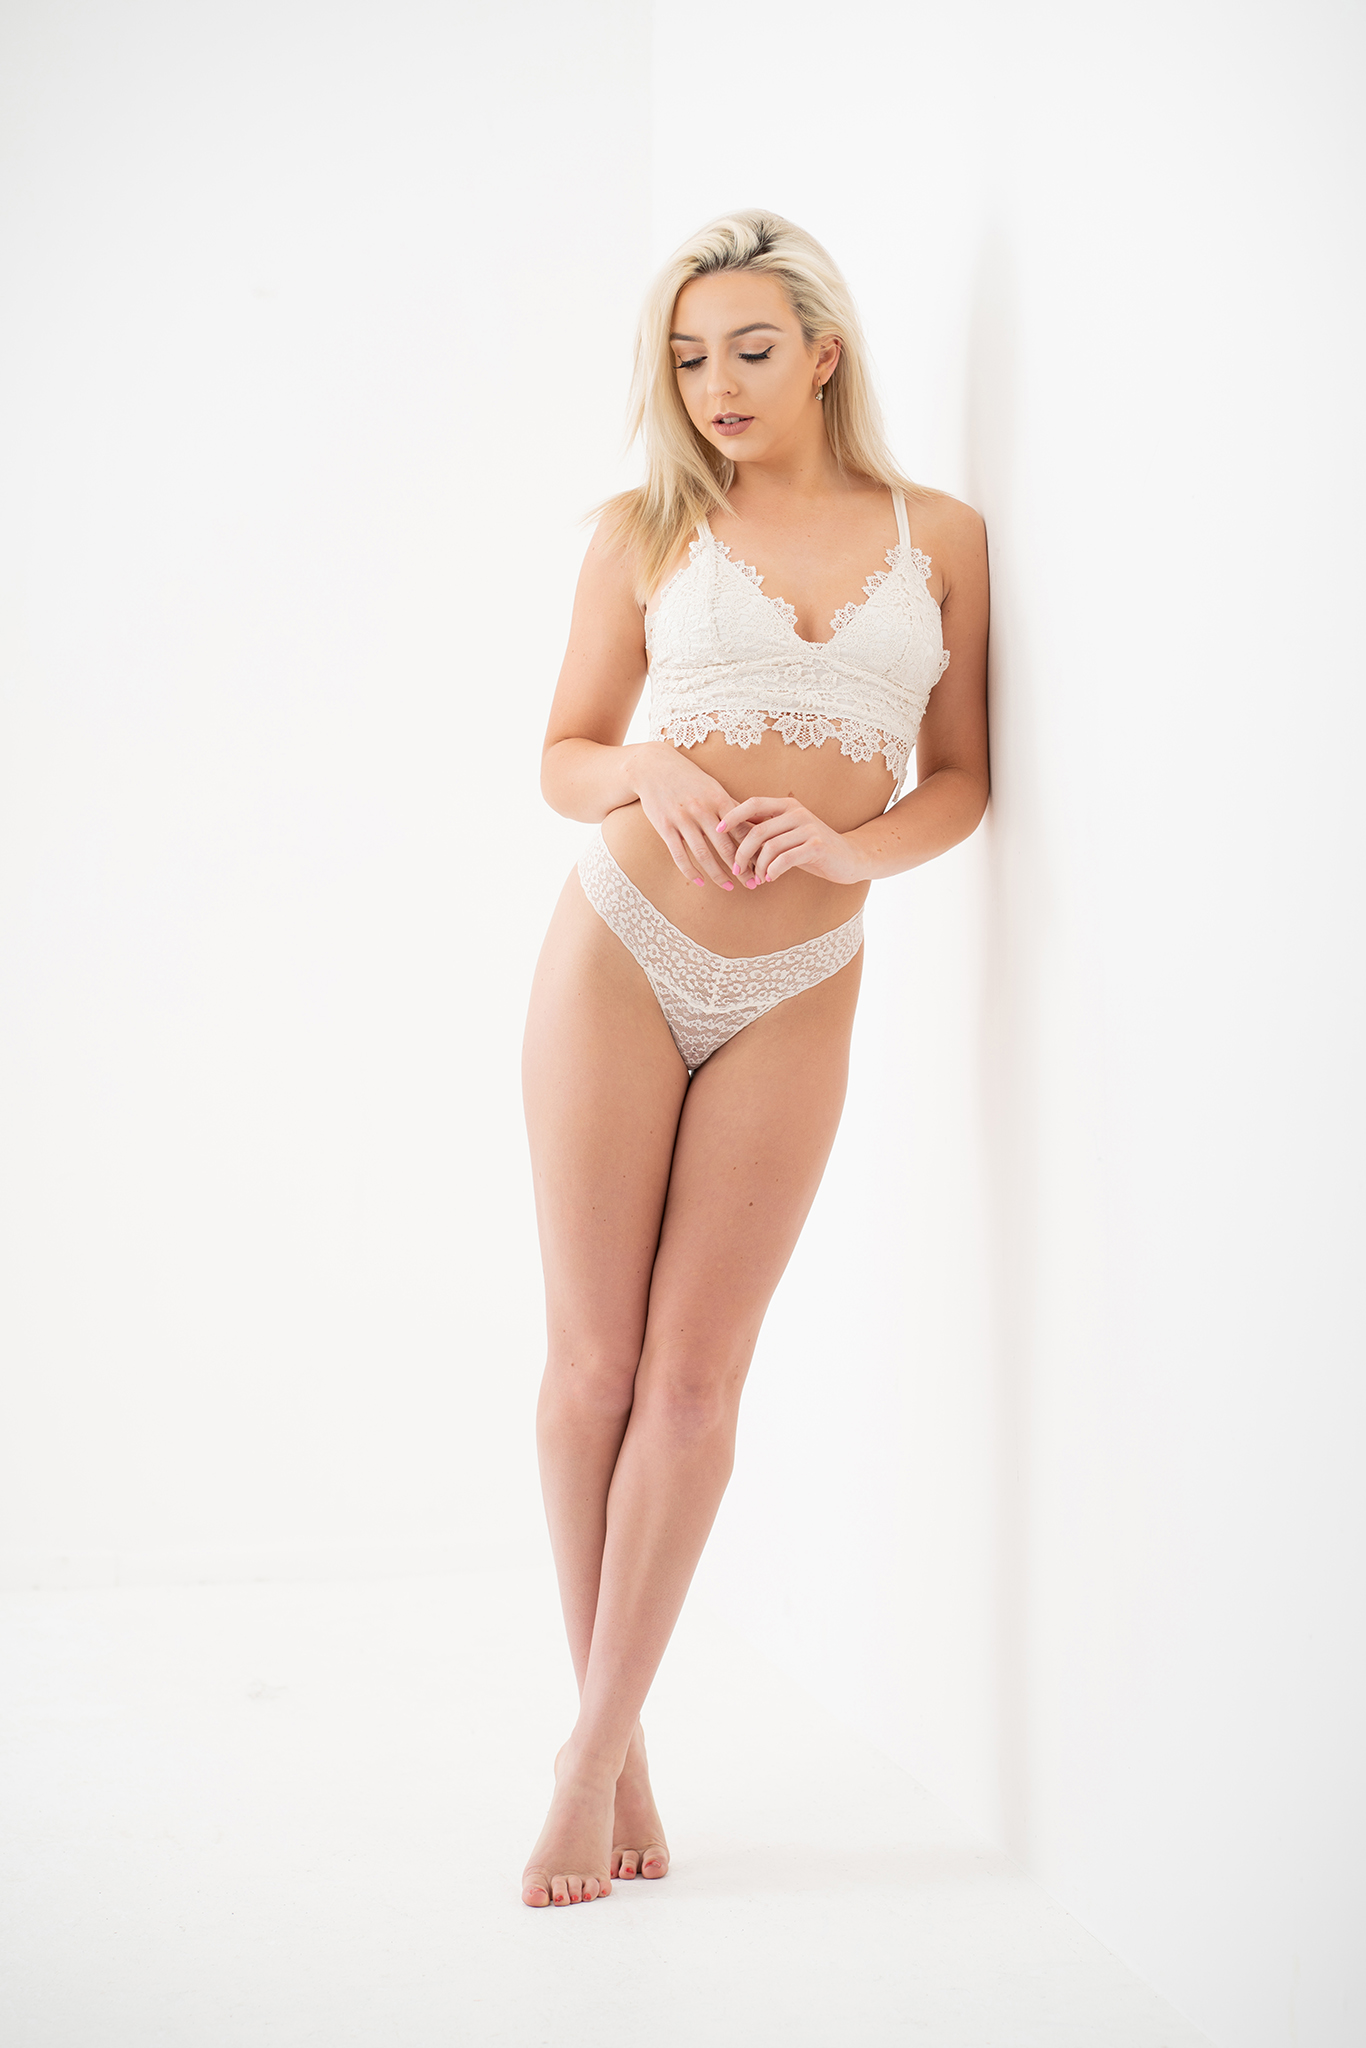 blonde model in white underwear by Boudoir Photographer Lancashire